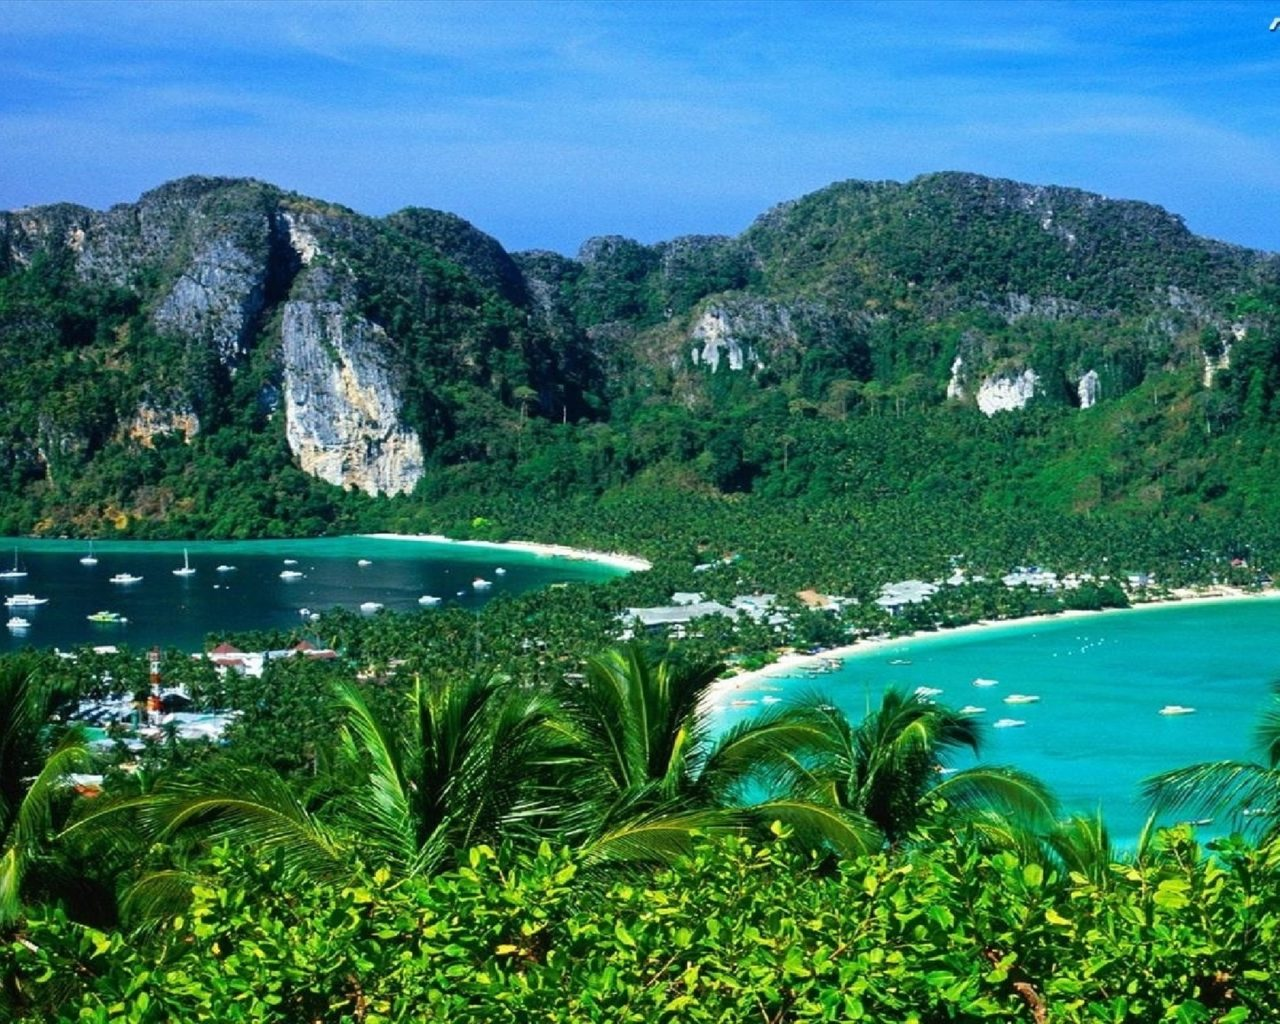 Stunning Wallpapers For Iphone X Thailand Beautiful Scenery Hd Wallpaper 66855